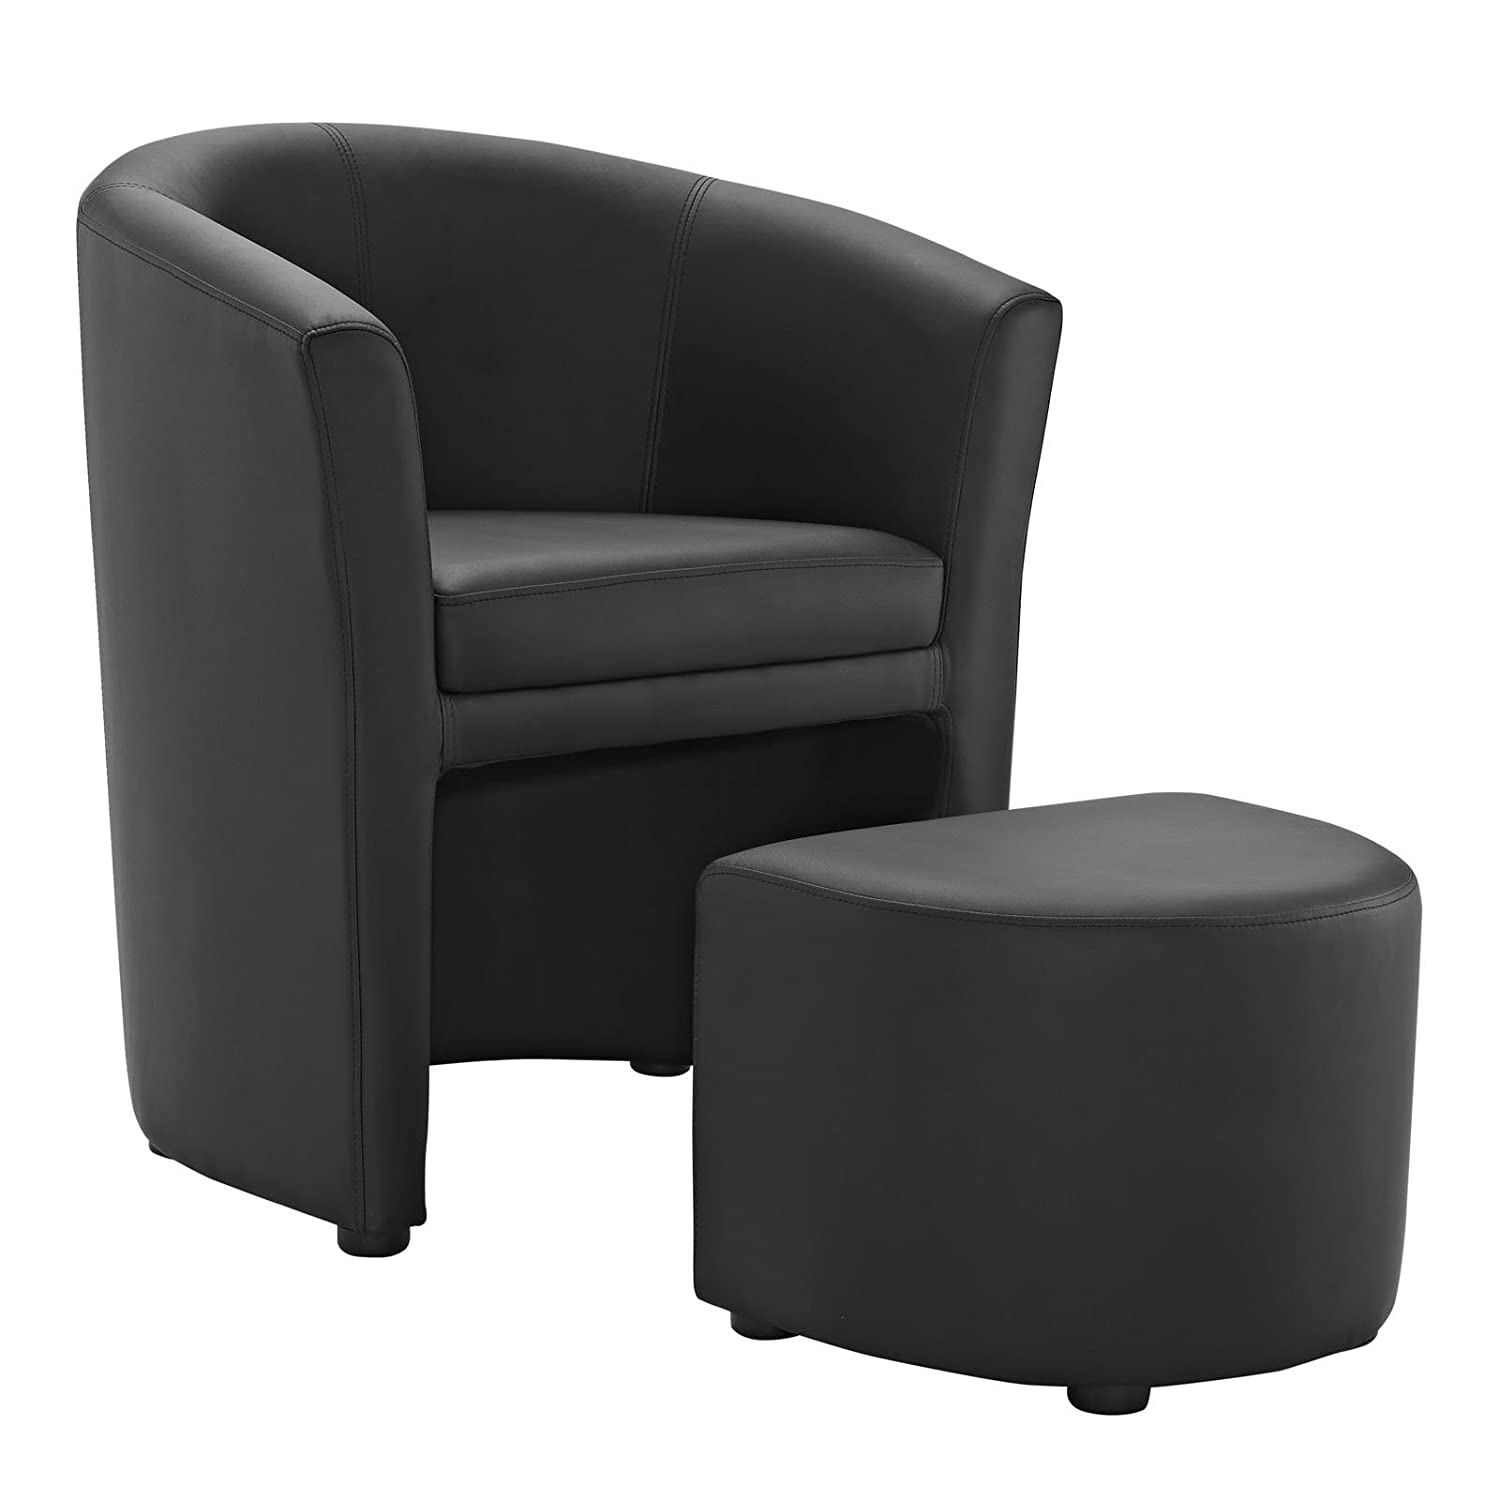 Amazon Modway Divulge Armchair and Ottoman Black Kitchen